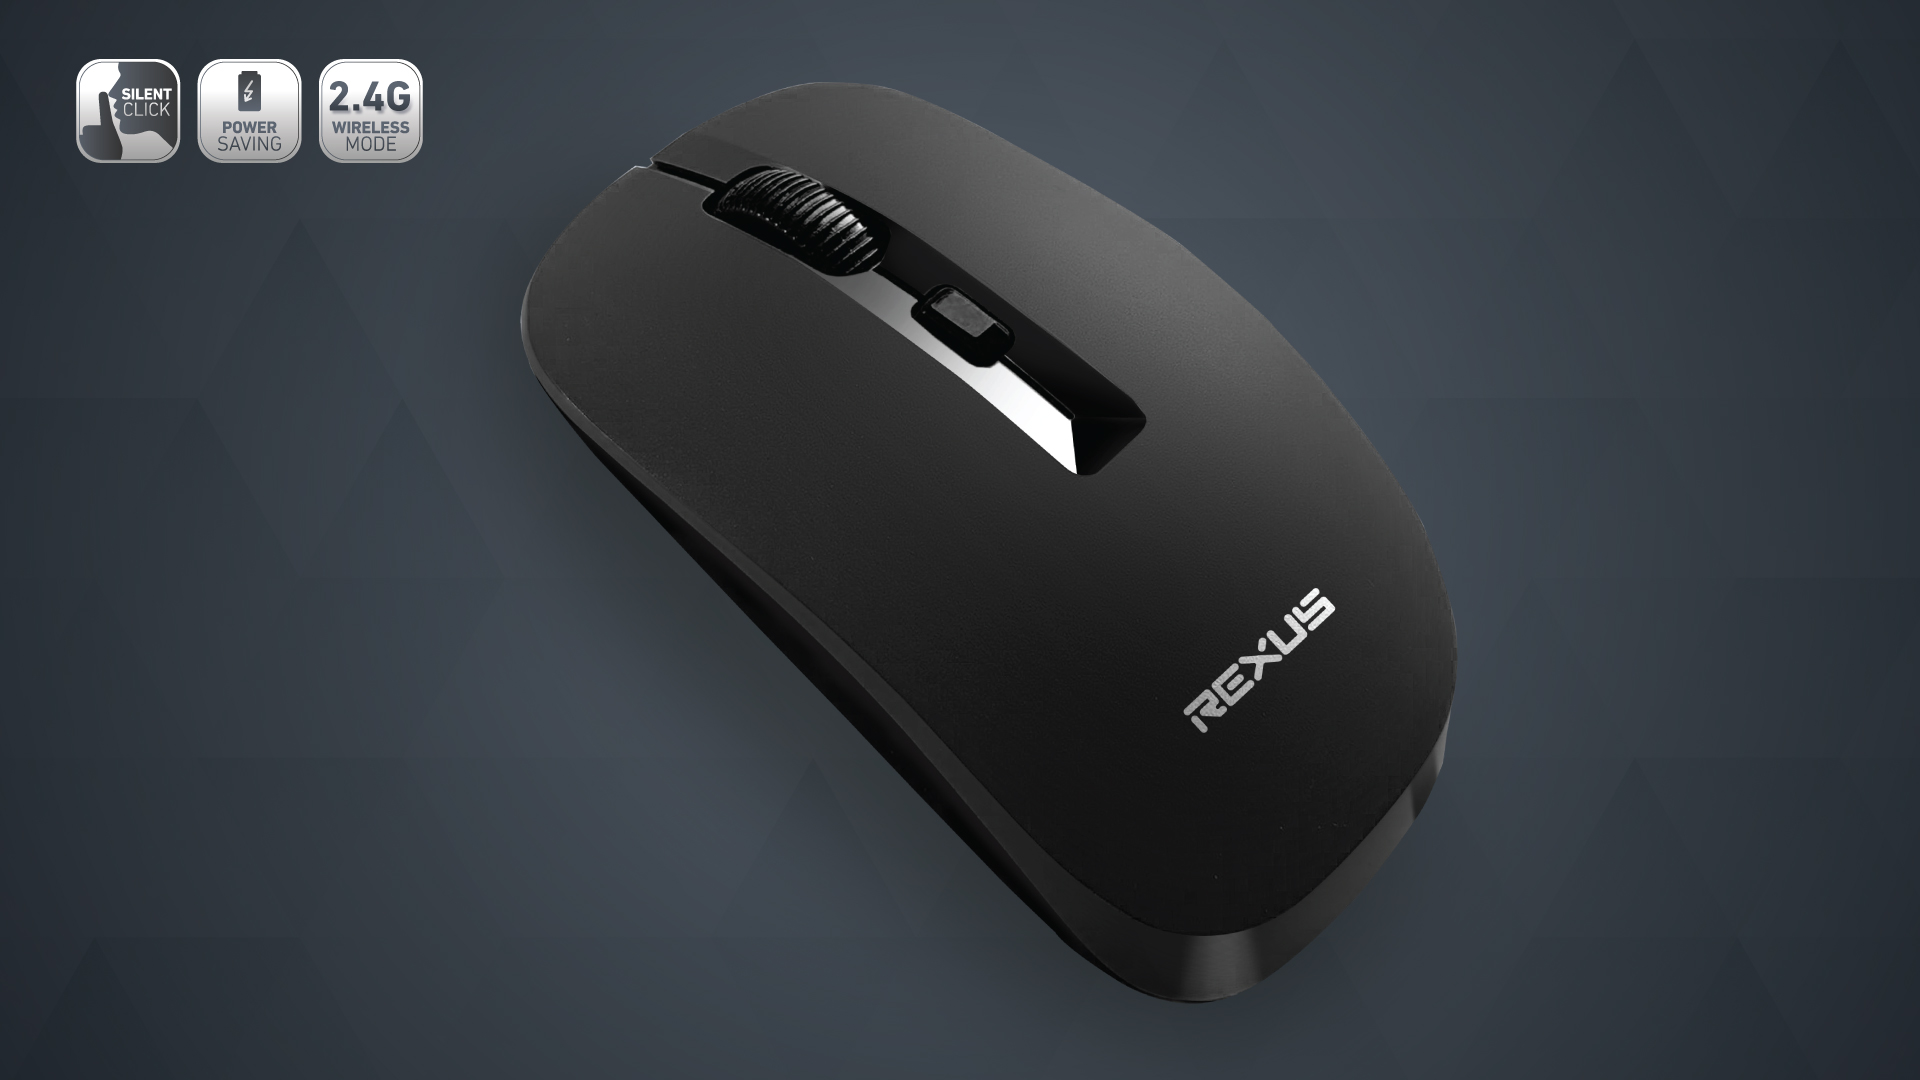 mouse wireless Rexus Q20 Q20 05 artwork